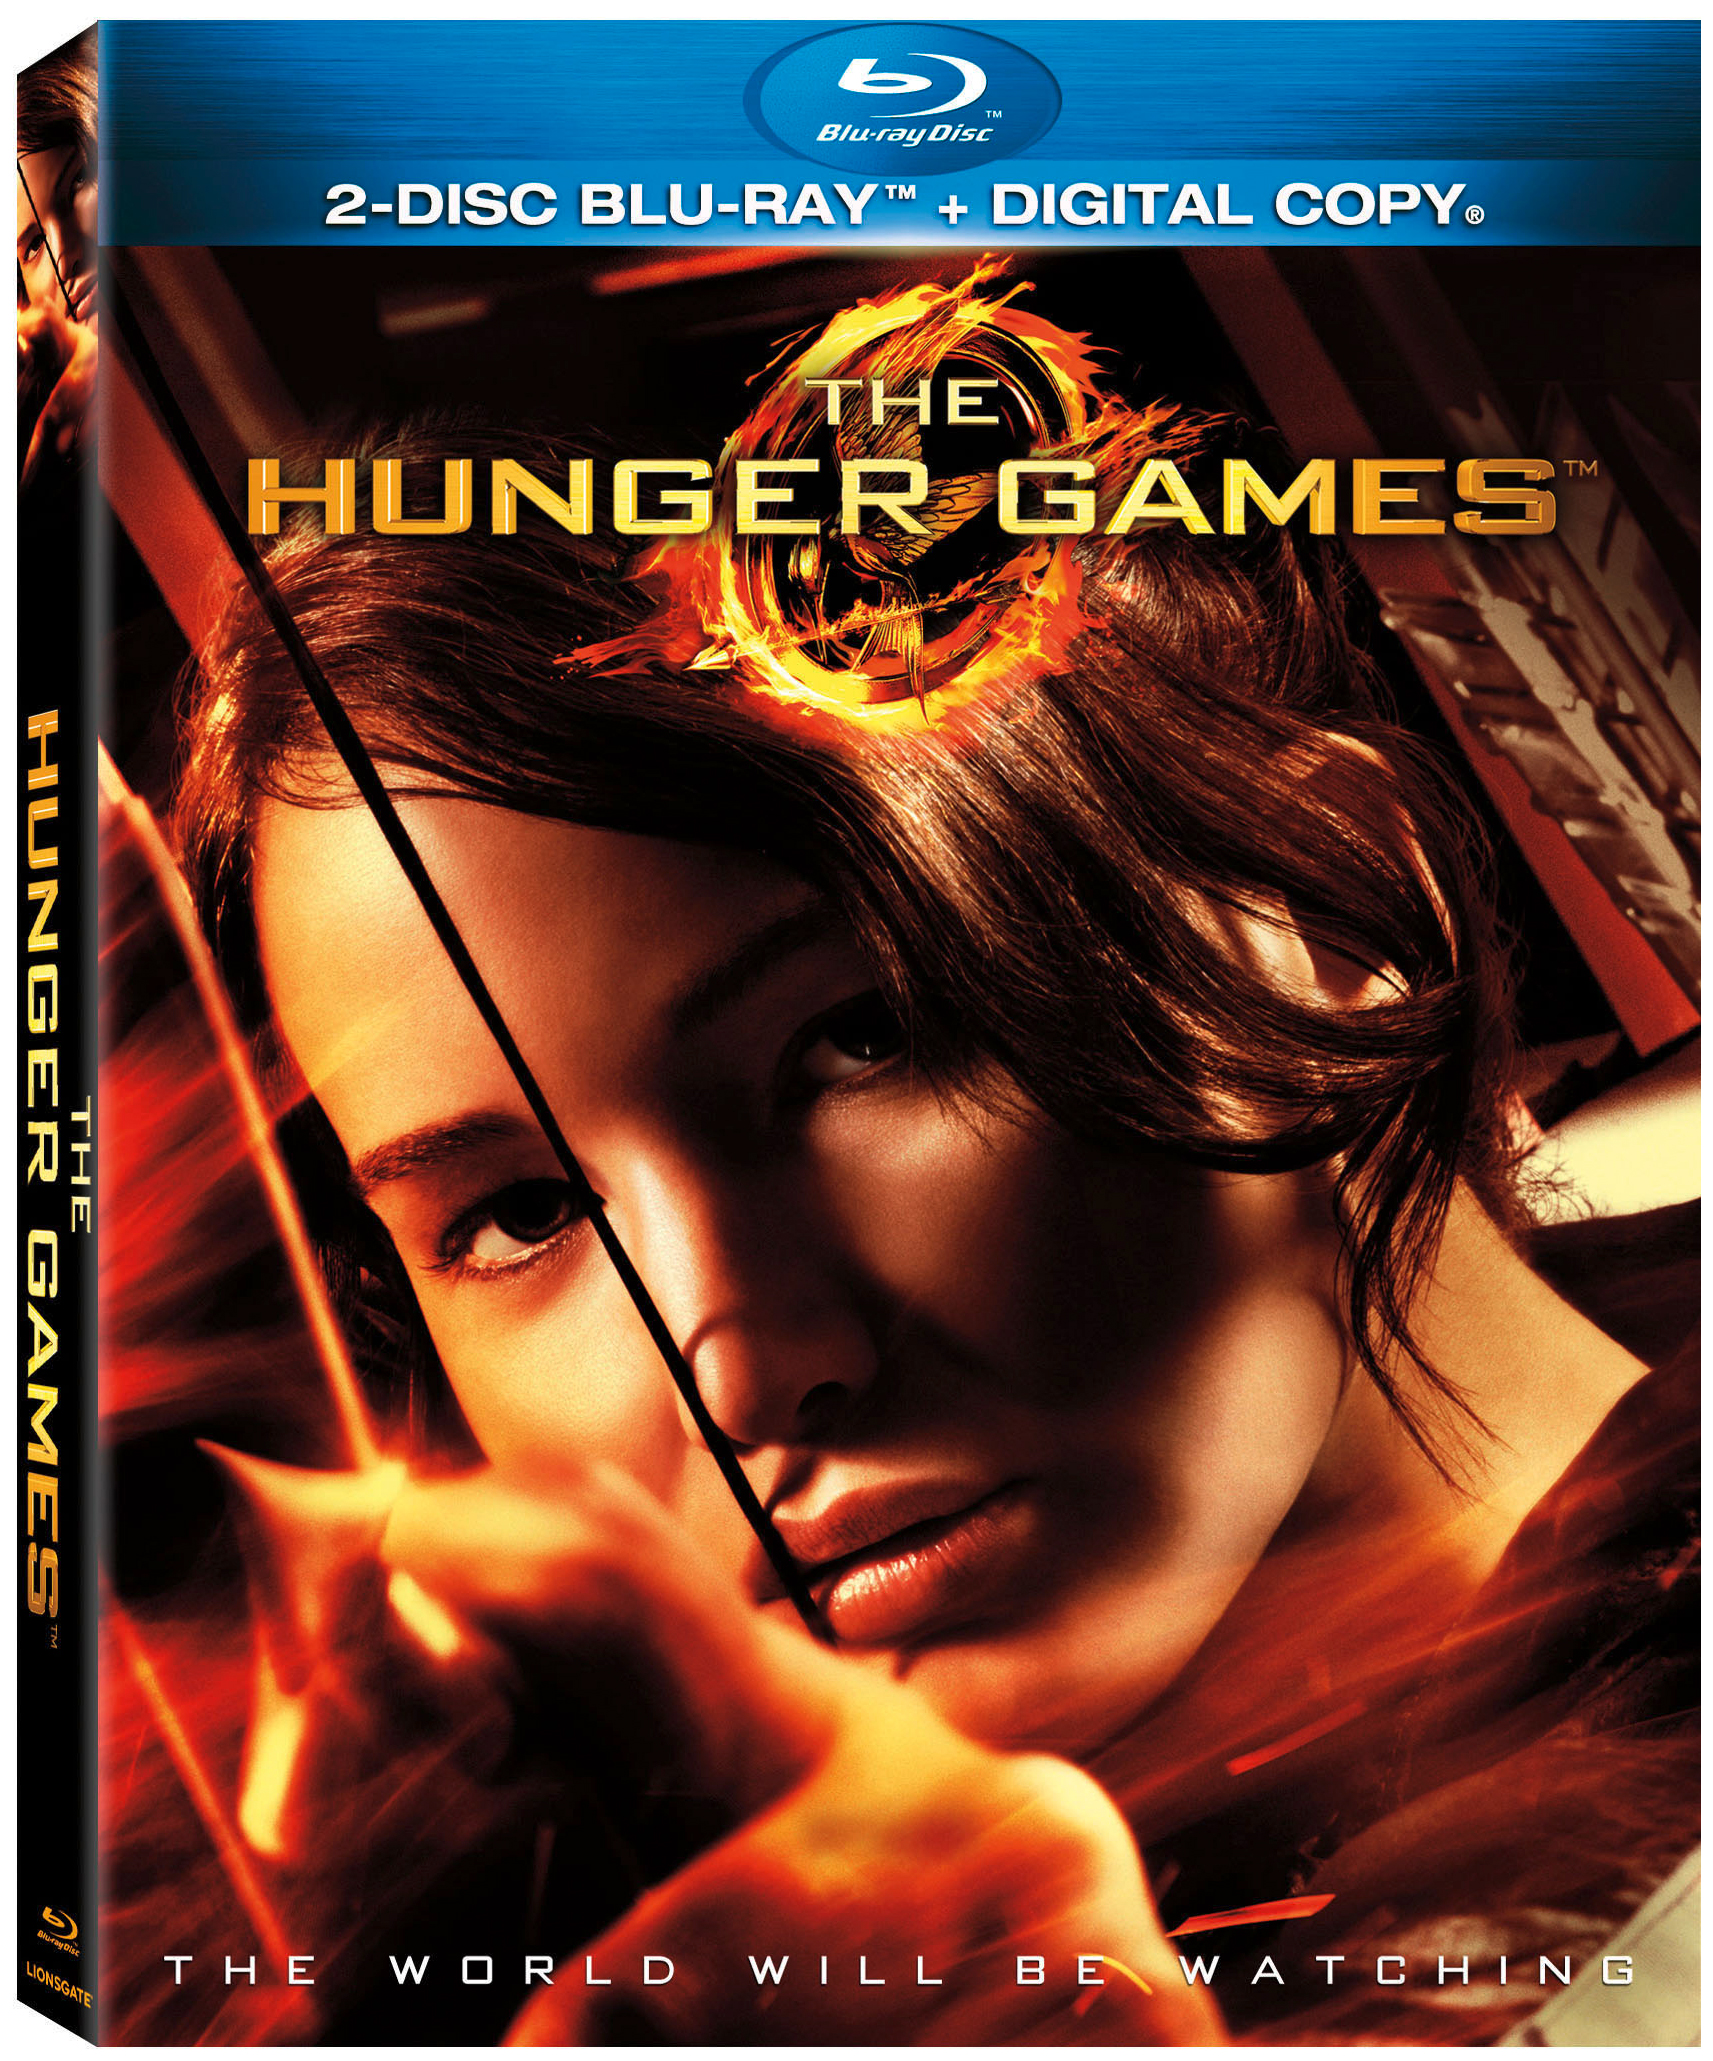 [MULTI] Hunger Games [BluRay 1080p Full HD DTS-HDMA]